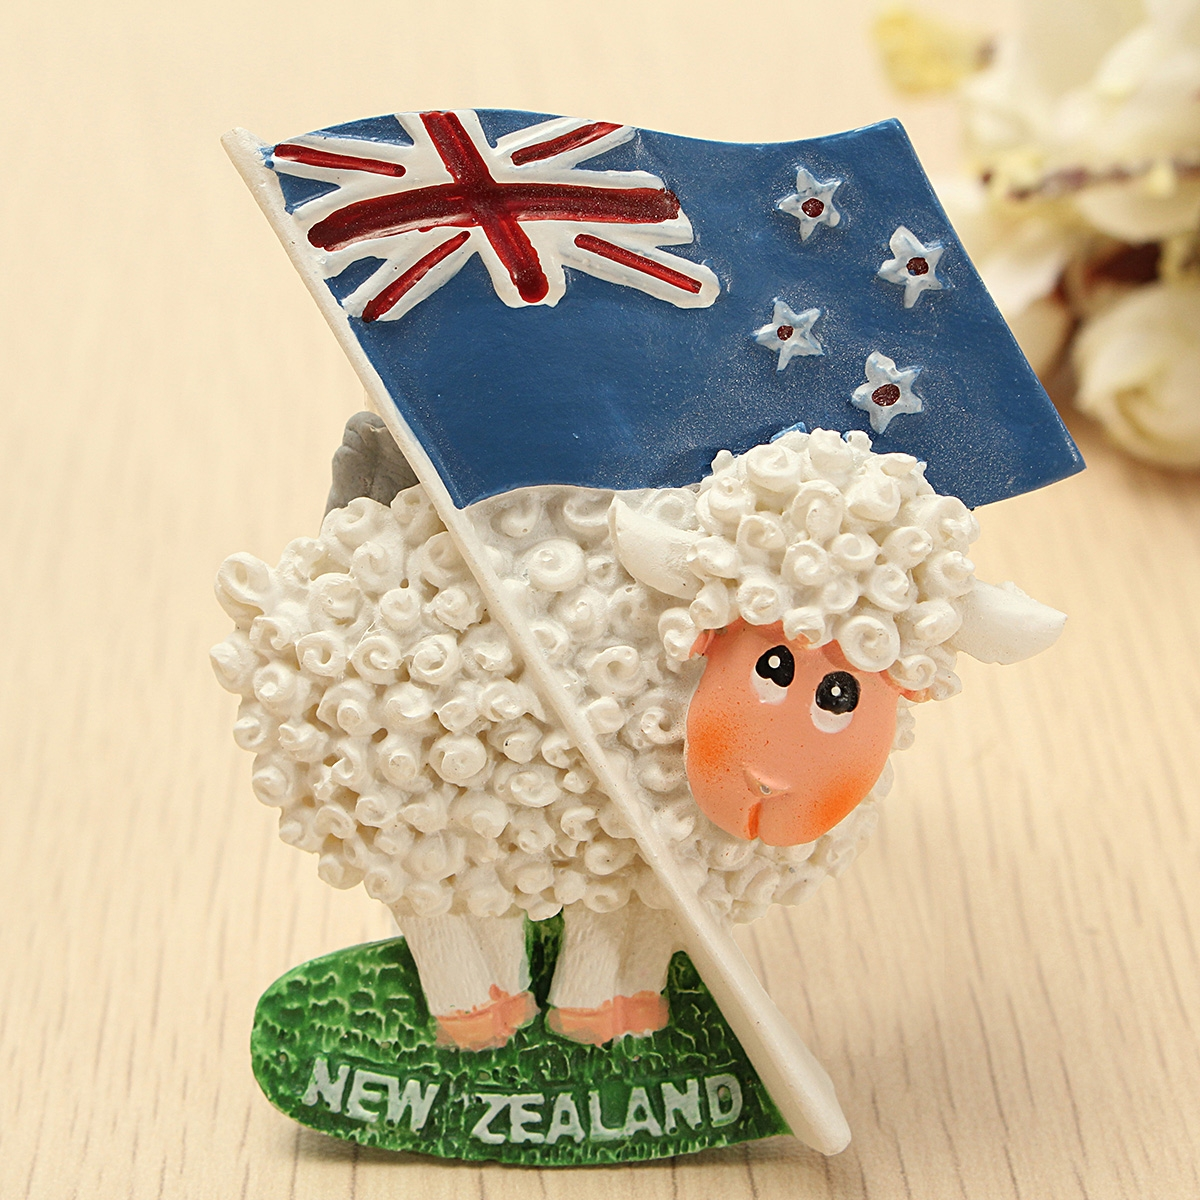 Cute Sheep & Flag 3D Resin Travel Fridge Magnet New Zealand Tourist Souvenir